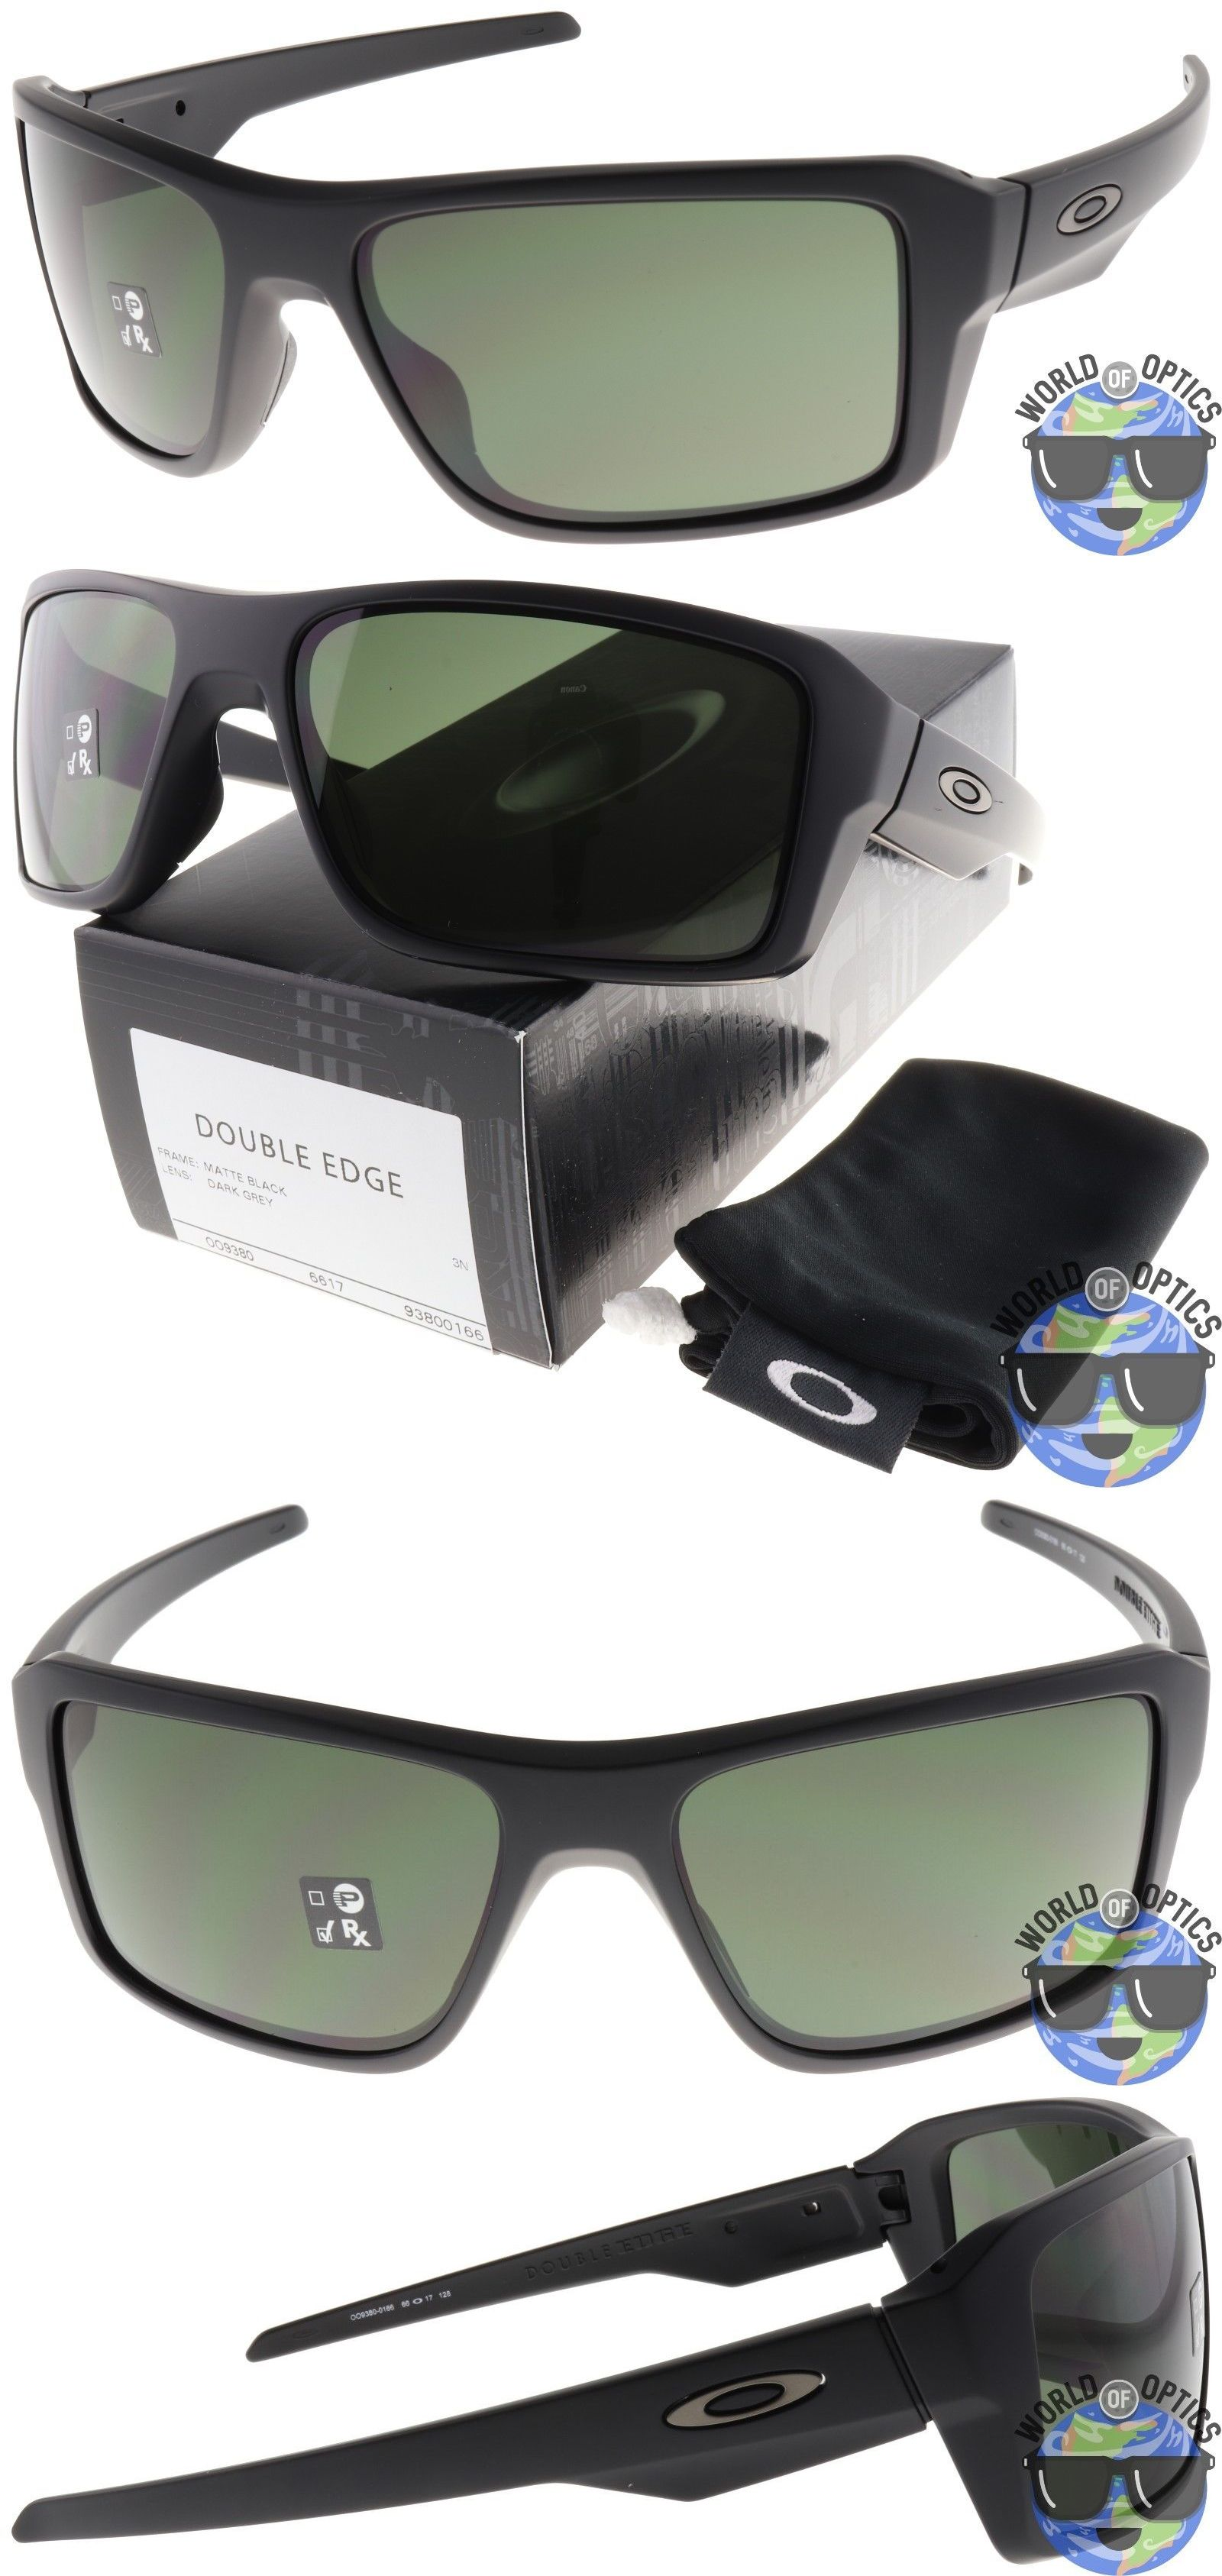 bbd9d26f43 Sunglasses 79720  Oakley Double Edge Sunglasses Oo9380-0166 Matte Black